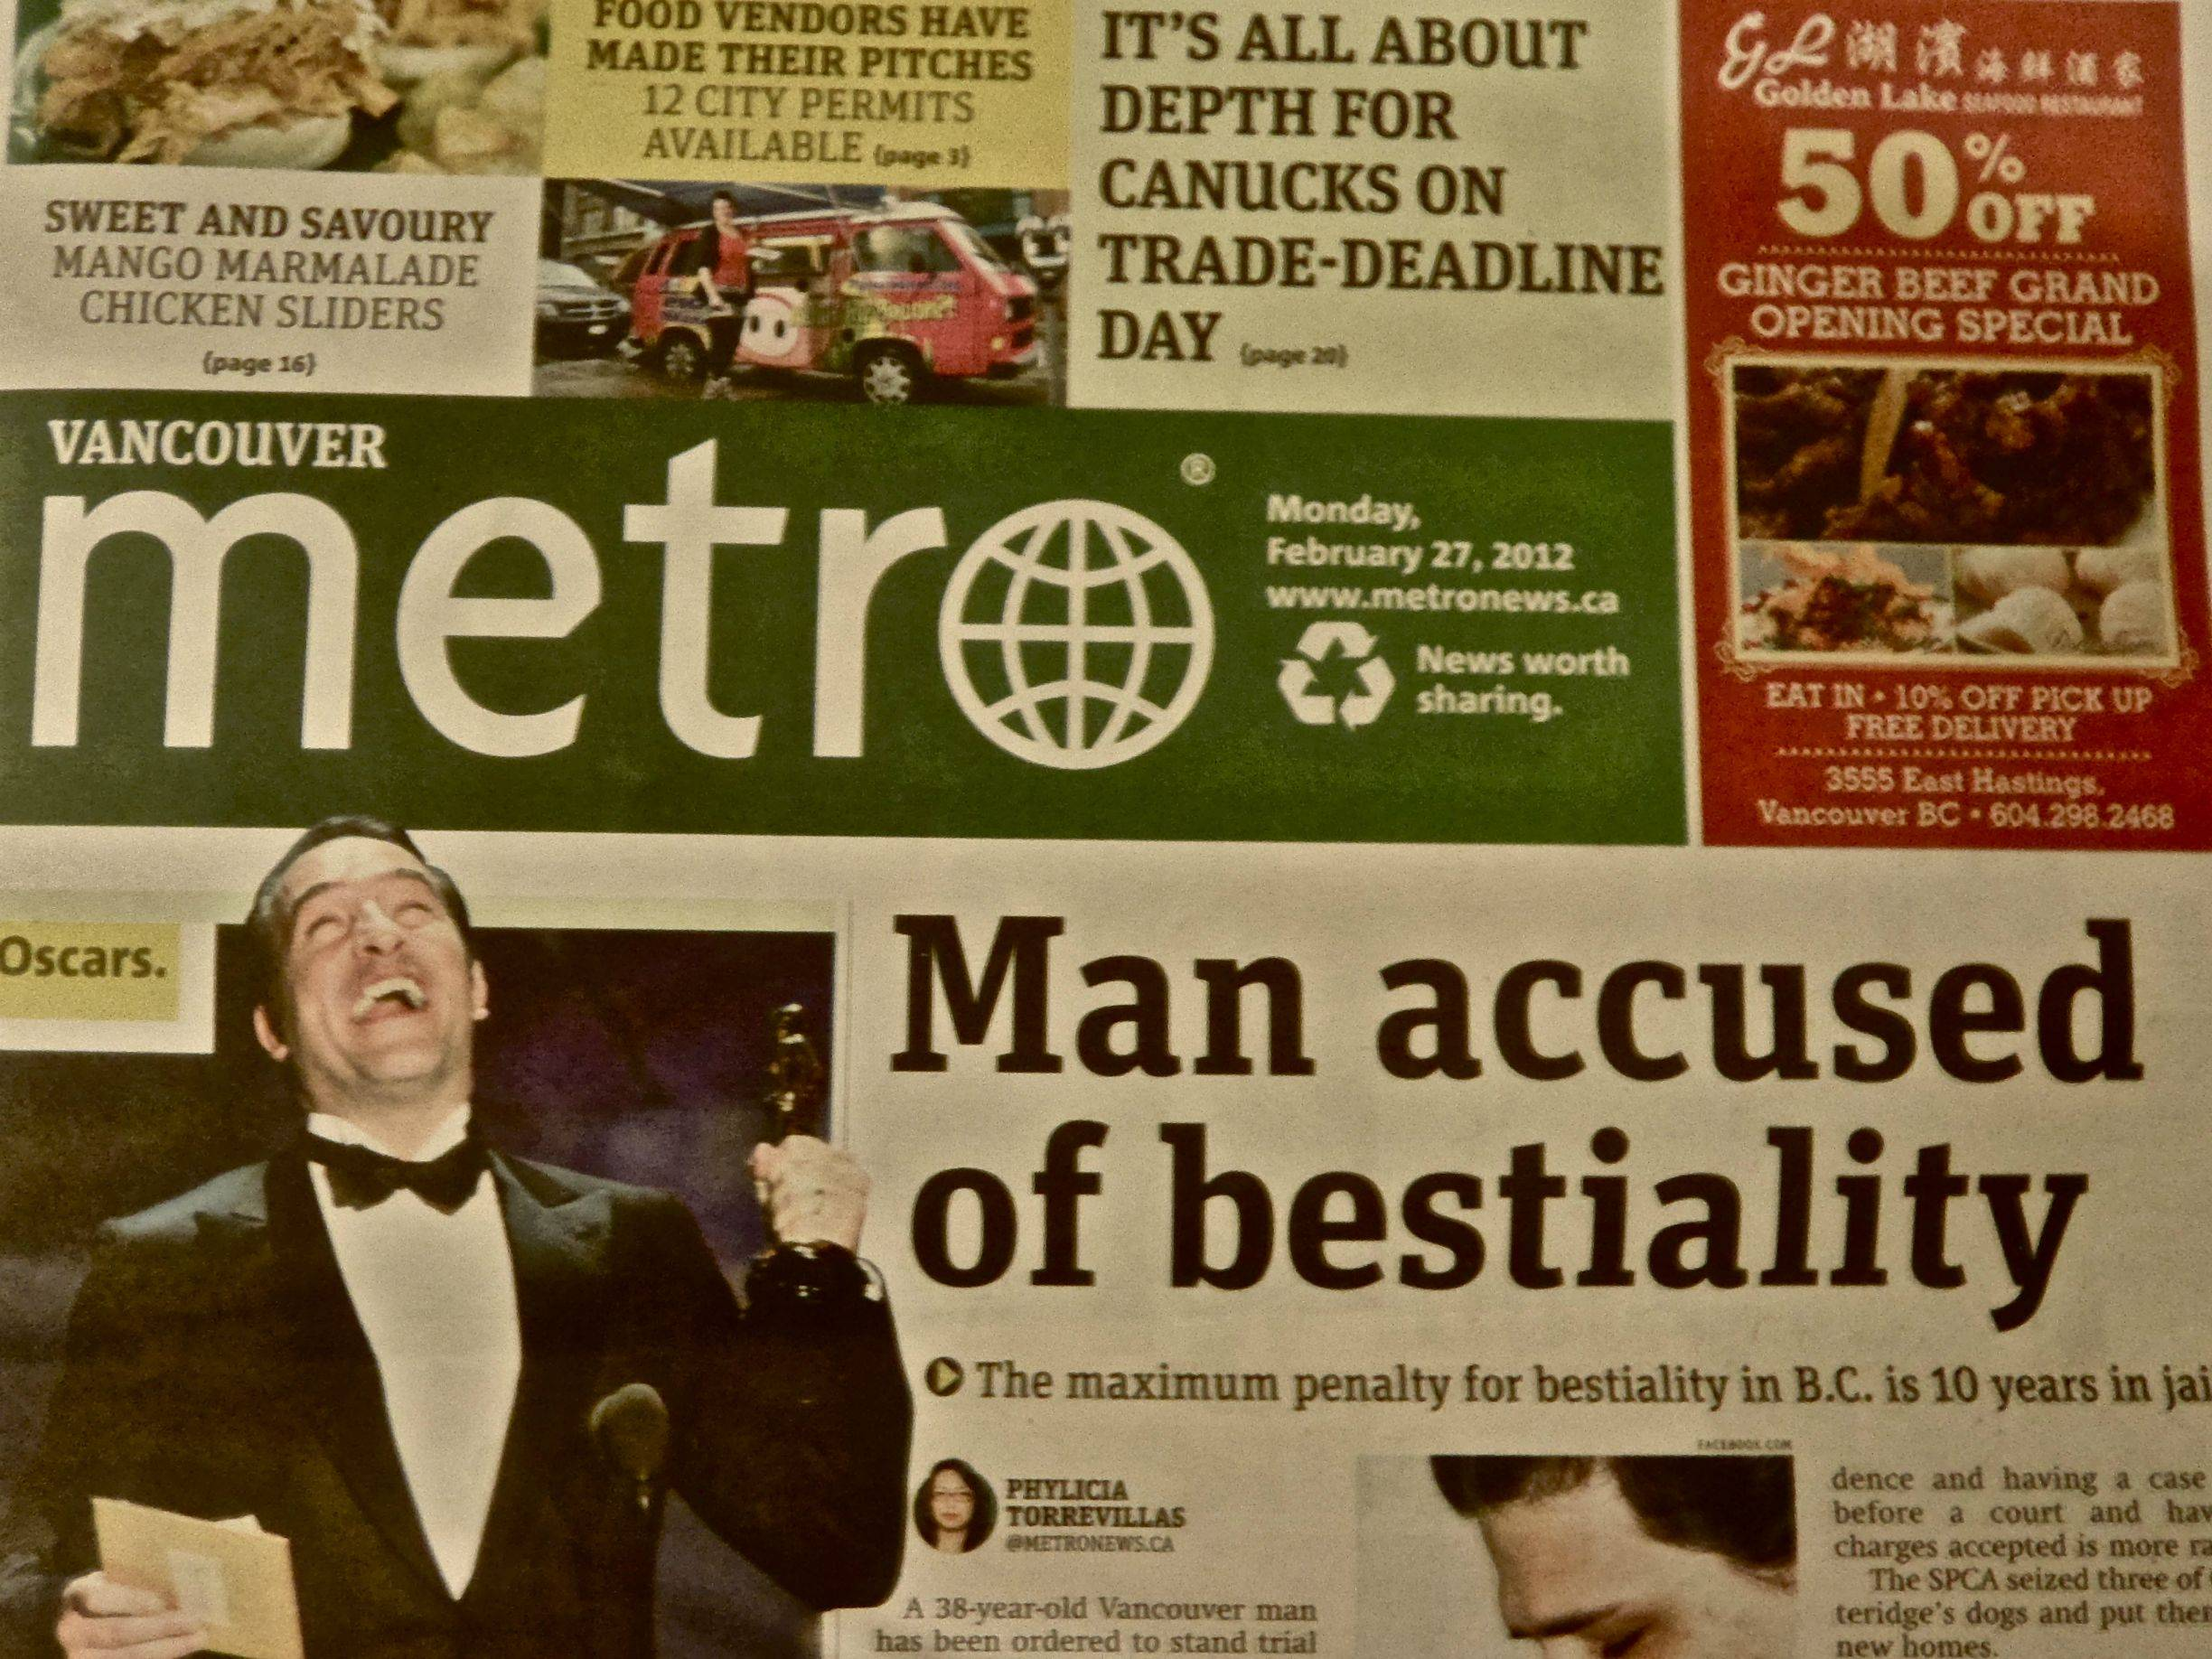 Unfortunate newspaper layout implies guy from 'The Artist' may have had sex with dog from 'The Artist.'